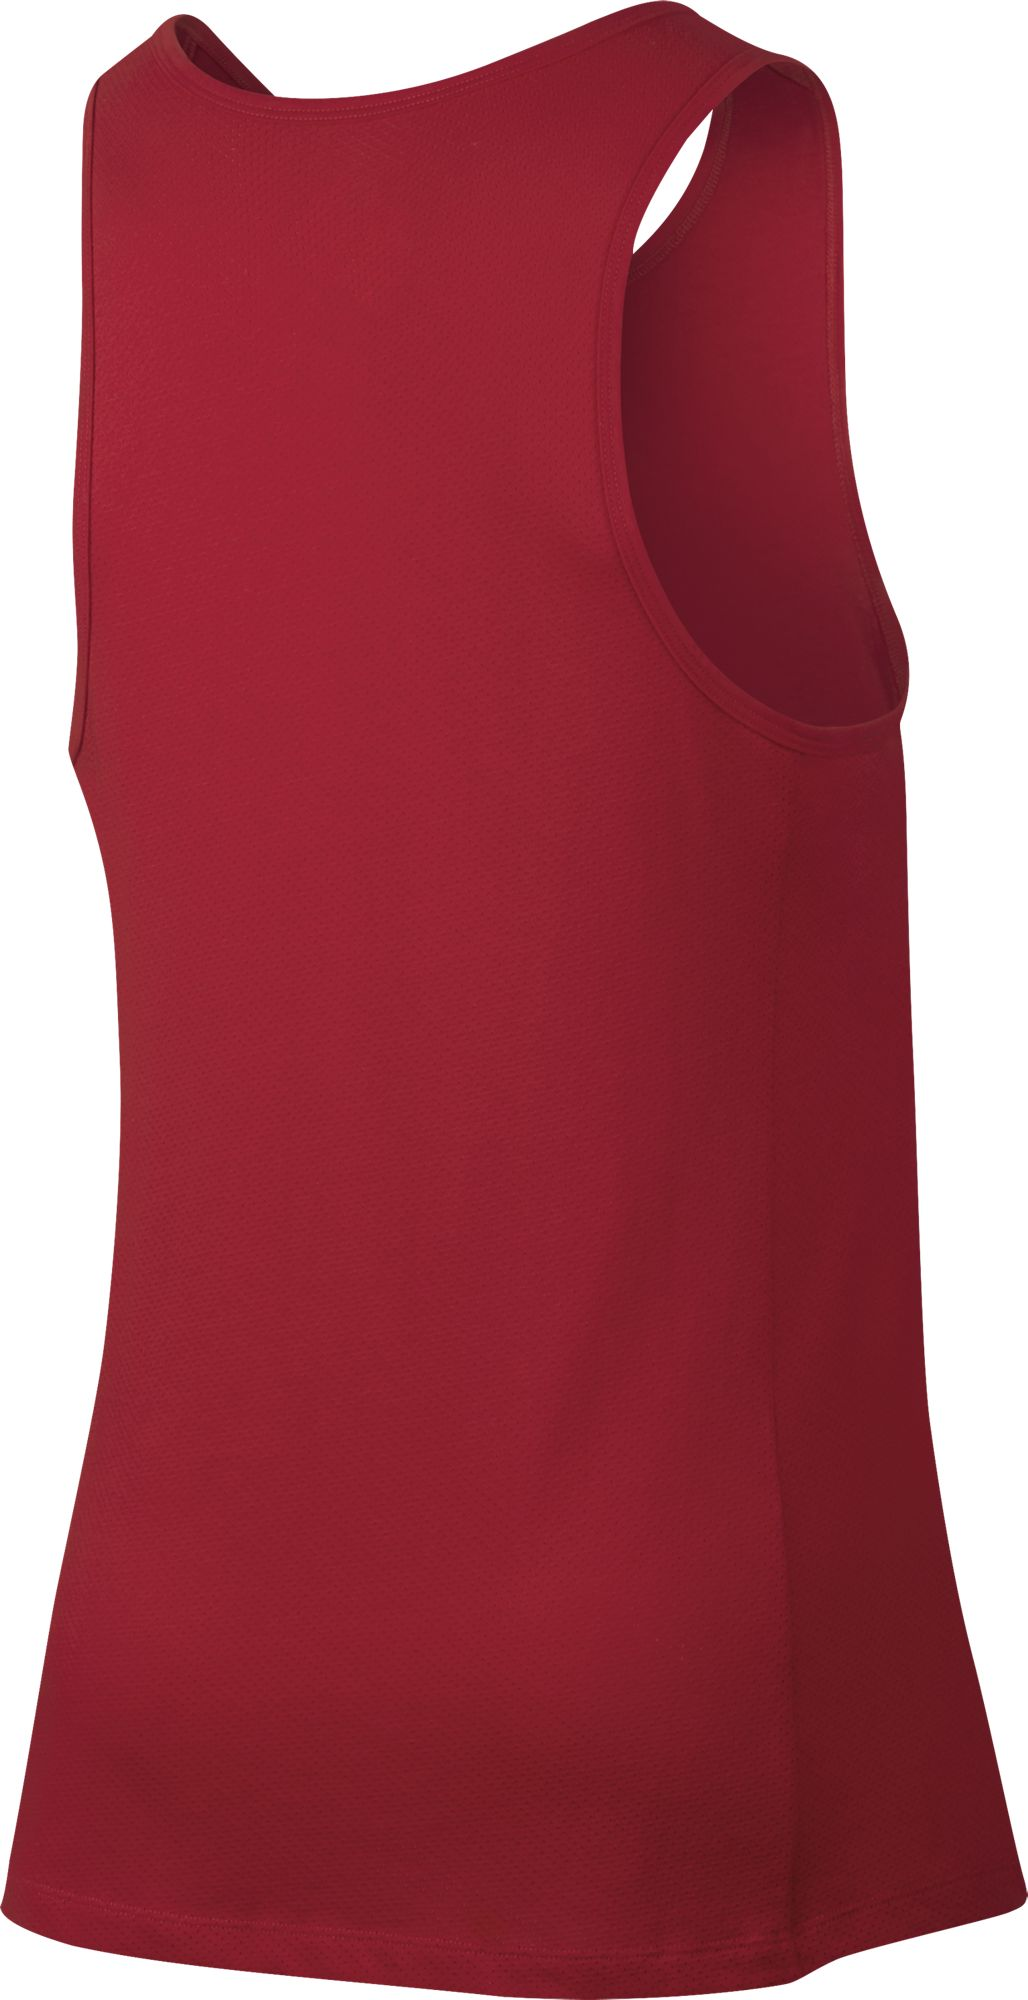 Nike Basketball Dry Elite Tank - University Red/Black